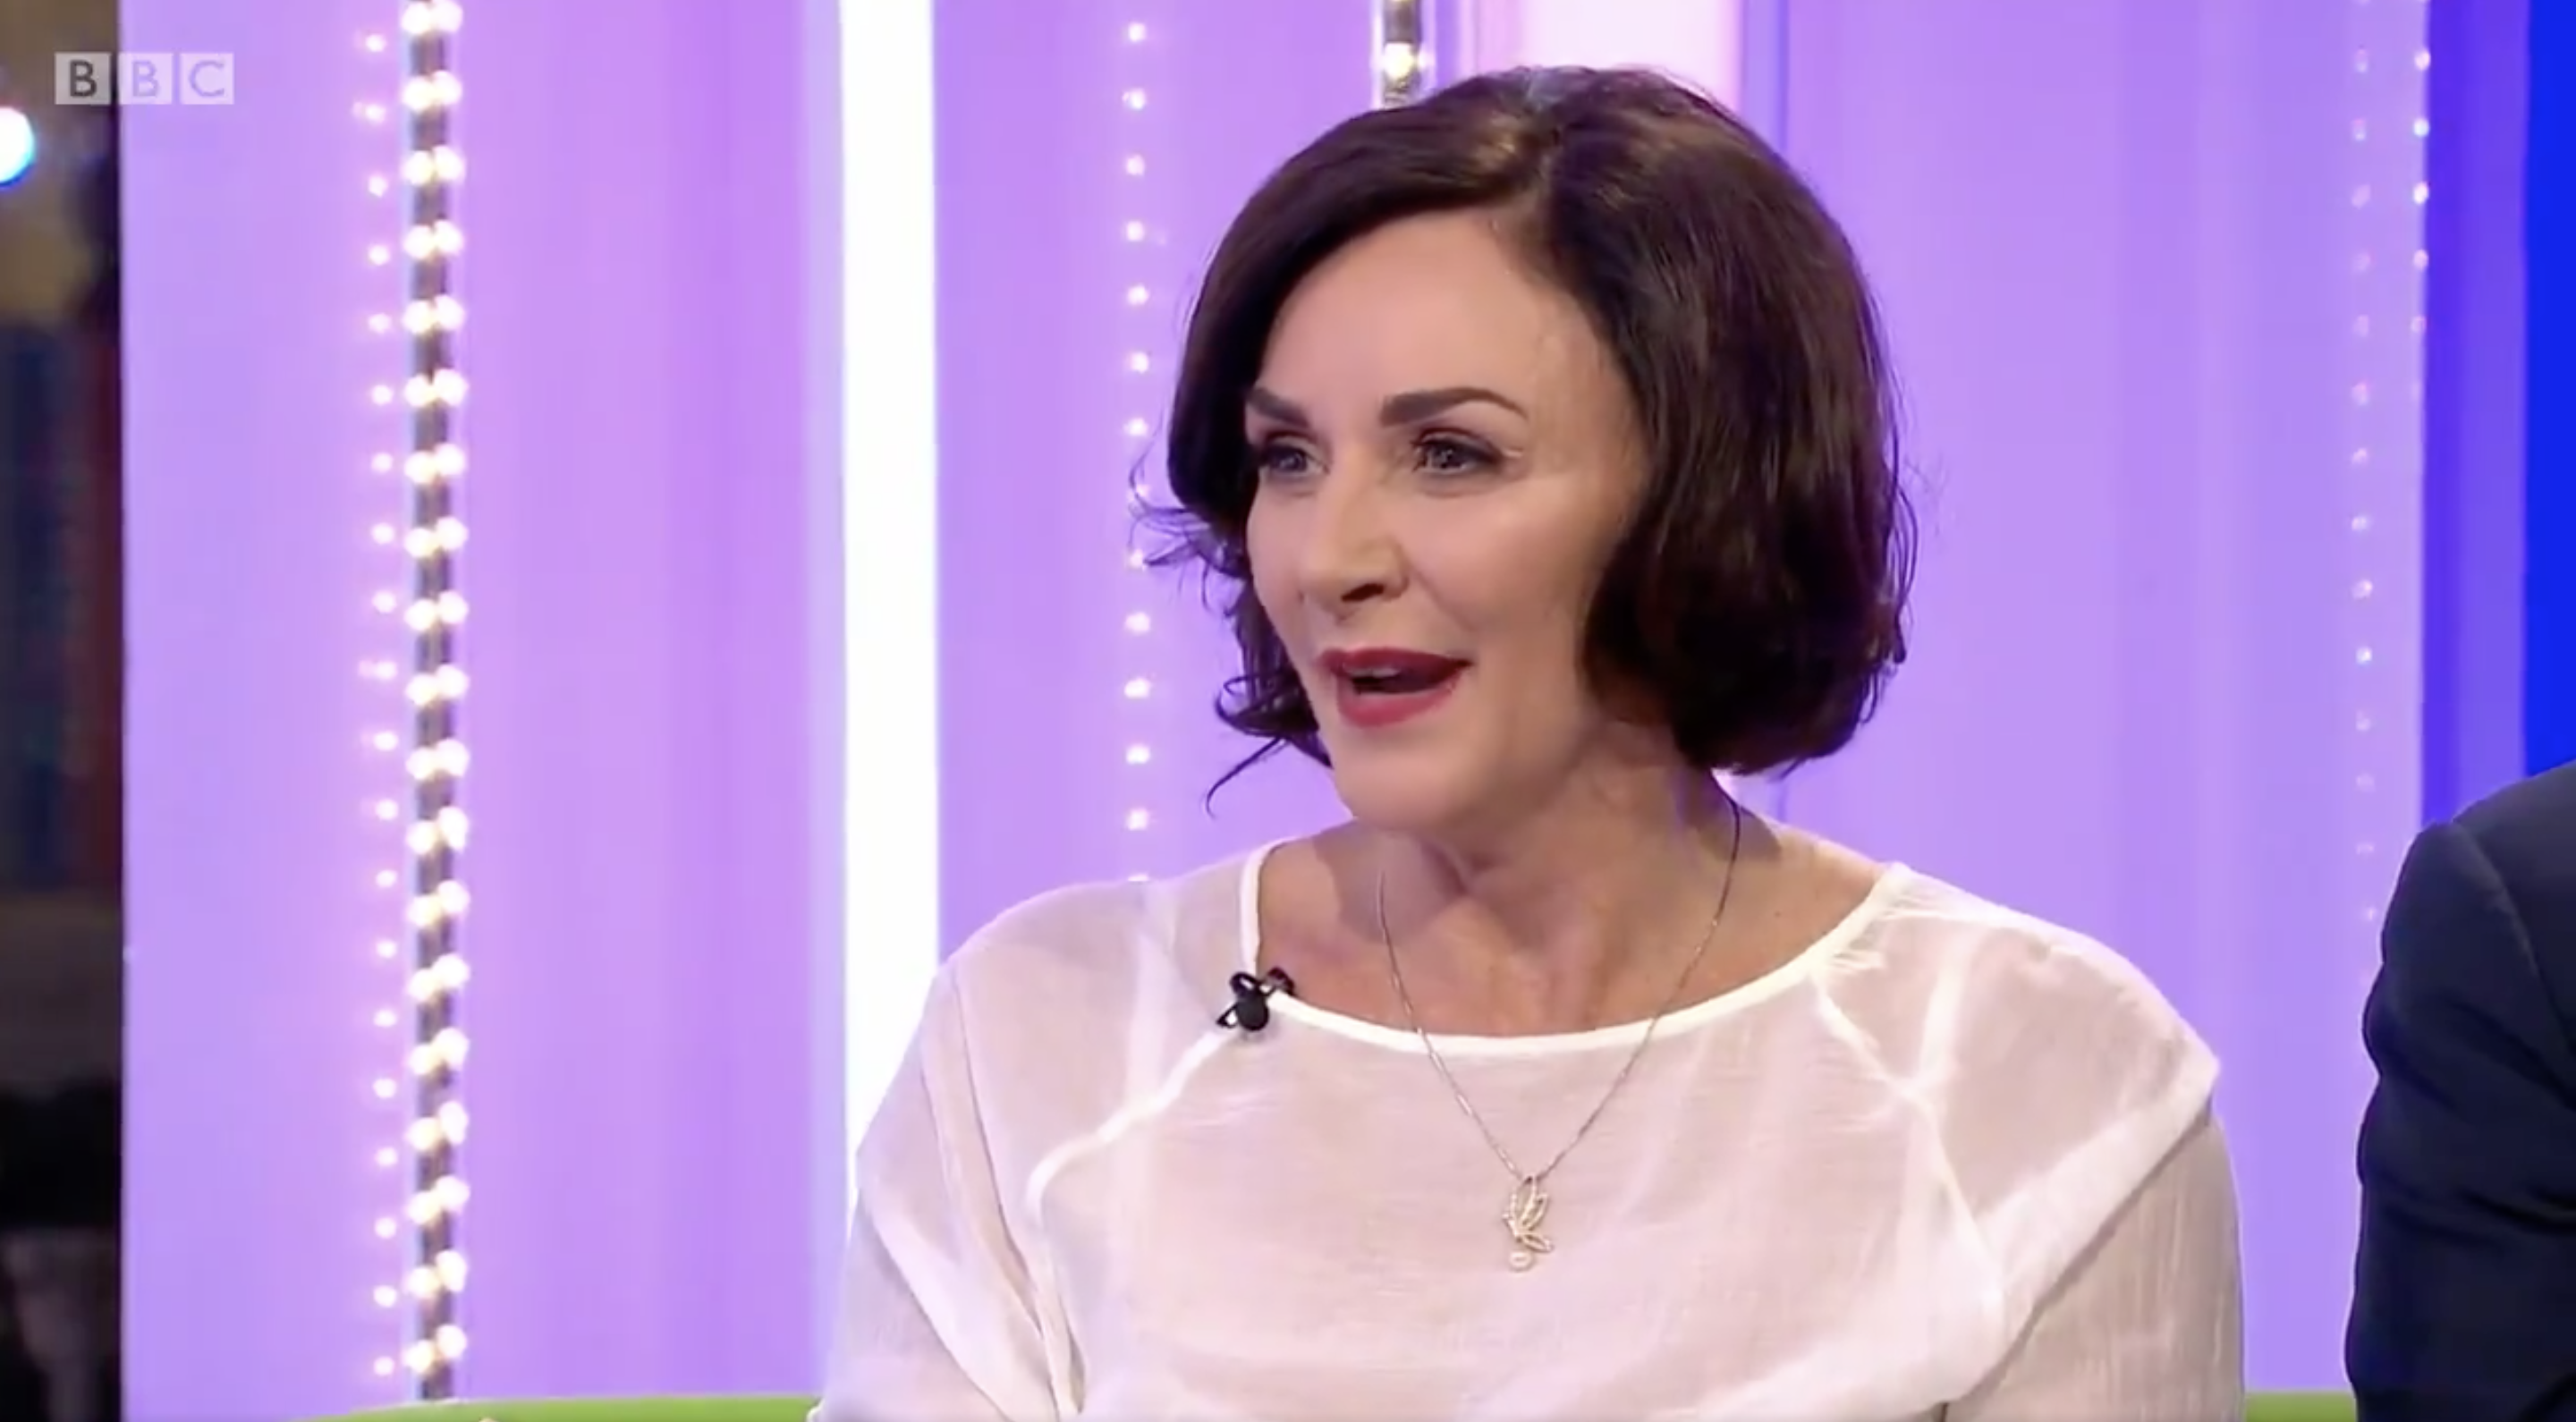 Strictly Come Dancing head judge Shirley Ballas reacts to Motsi Mabuse joining her panel